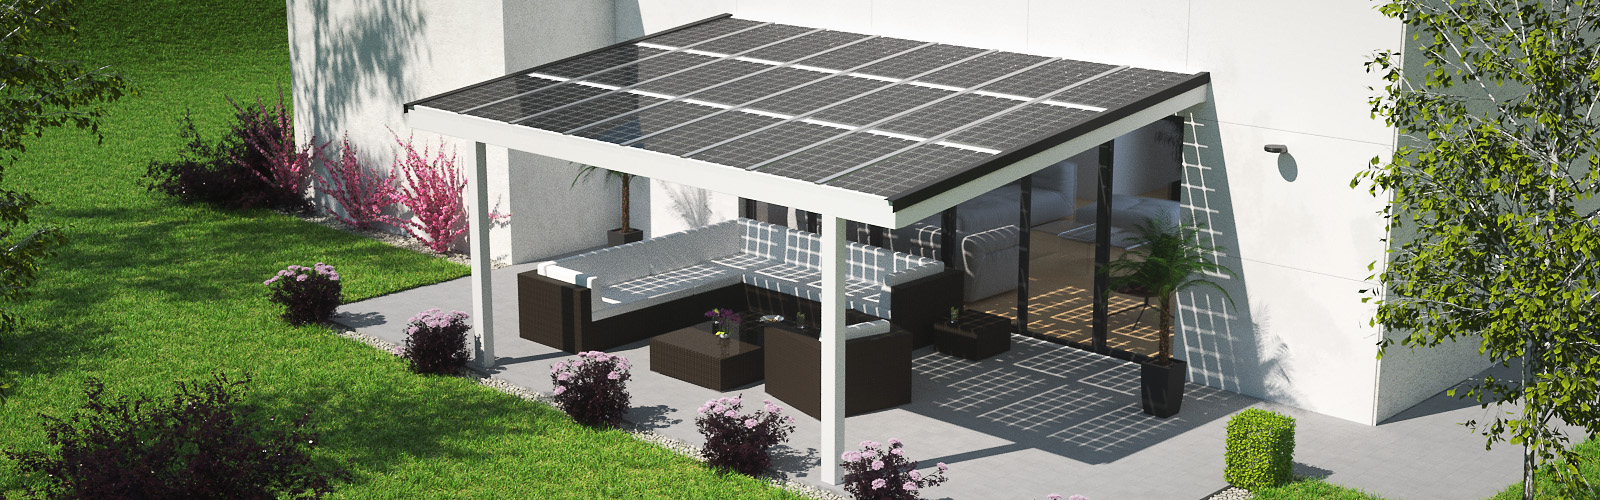 Solar Terrace Roof Shading Electricity Generation And Weather